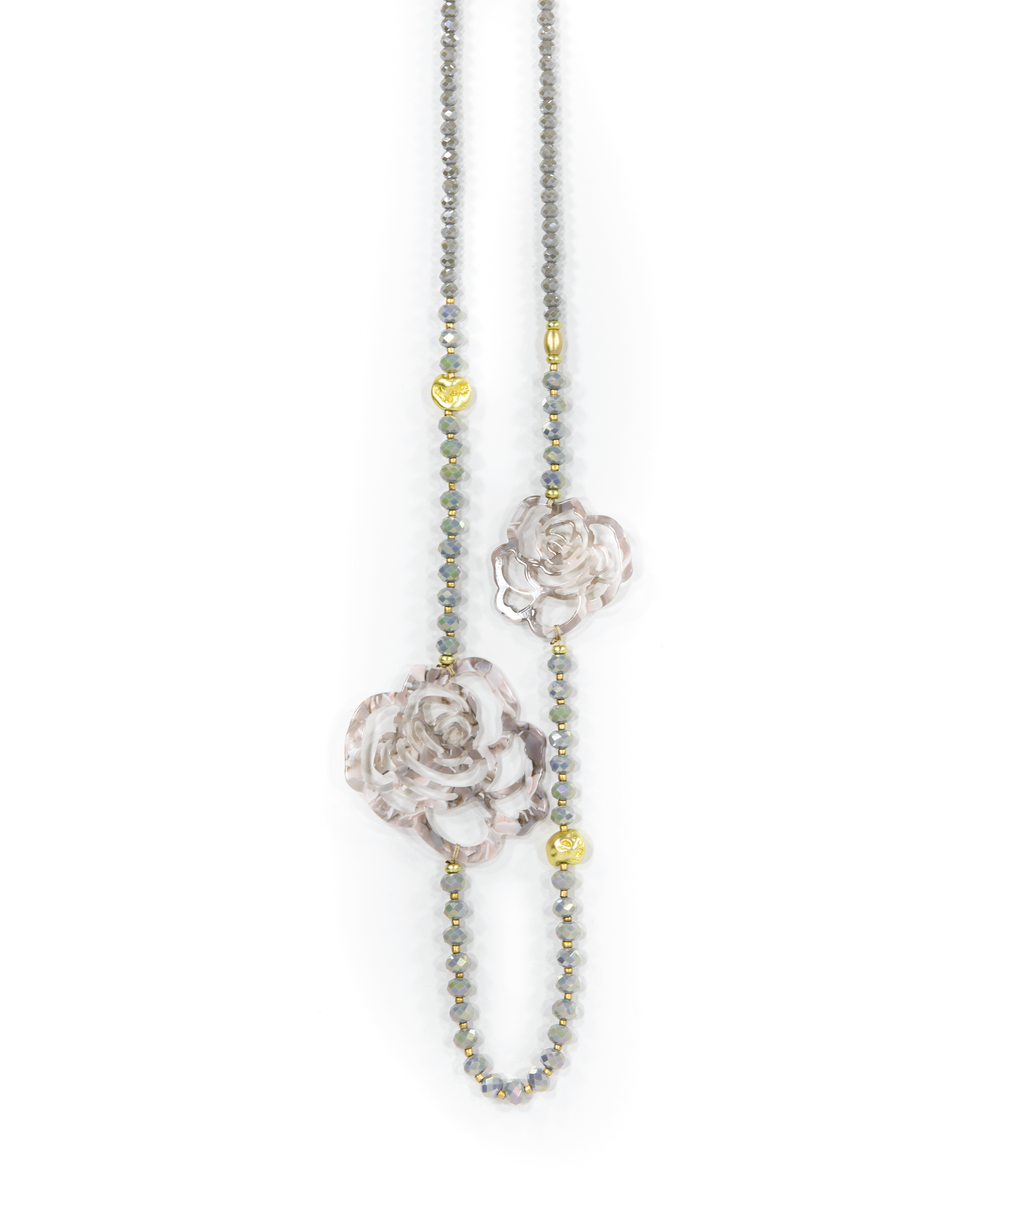 NECKLACE - Boheme